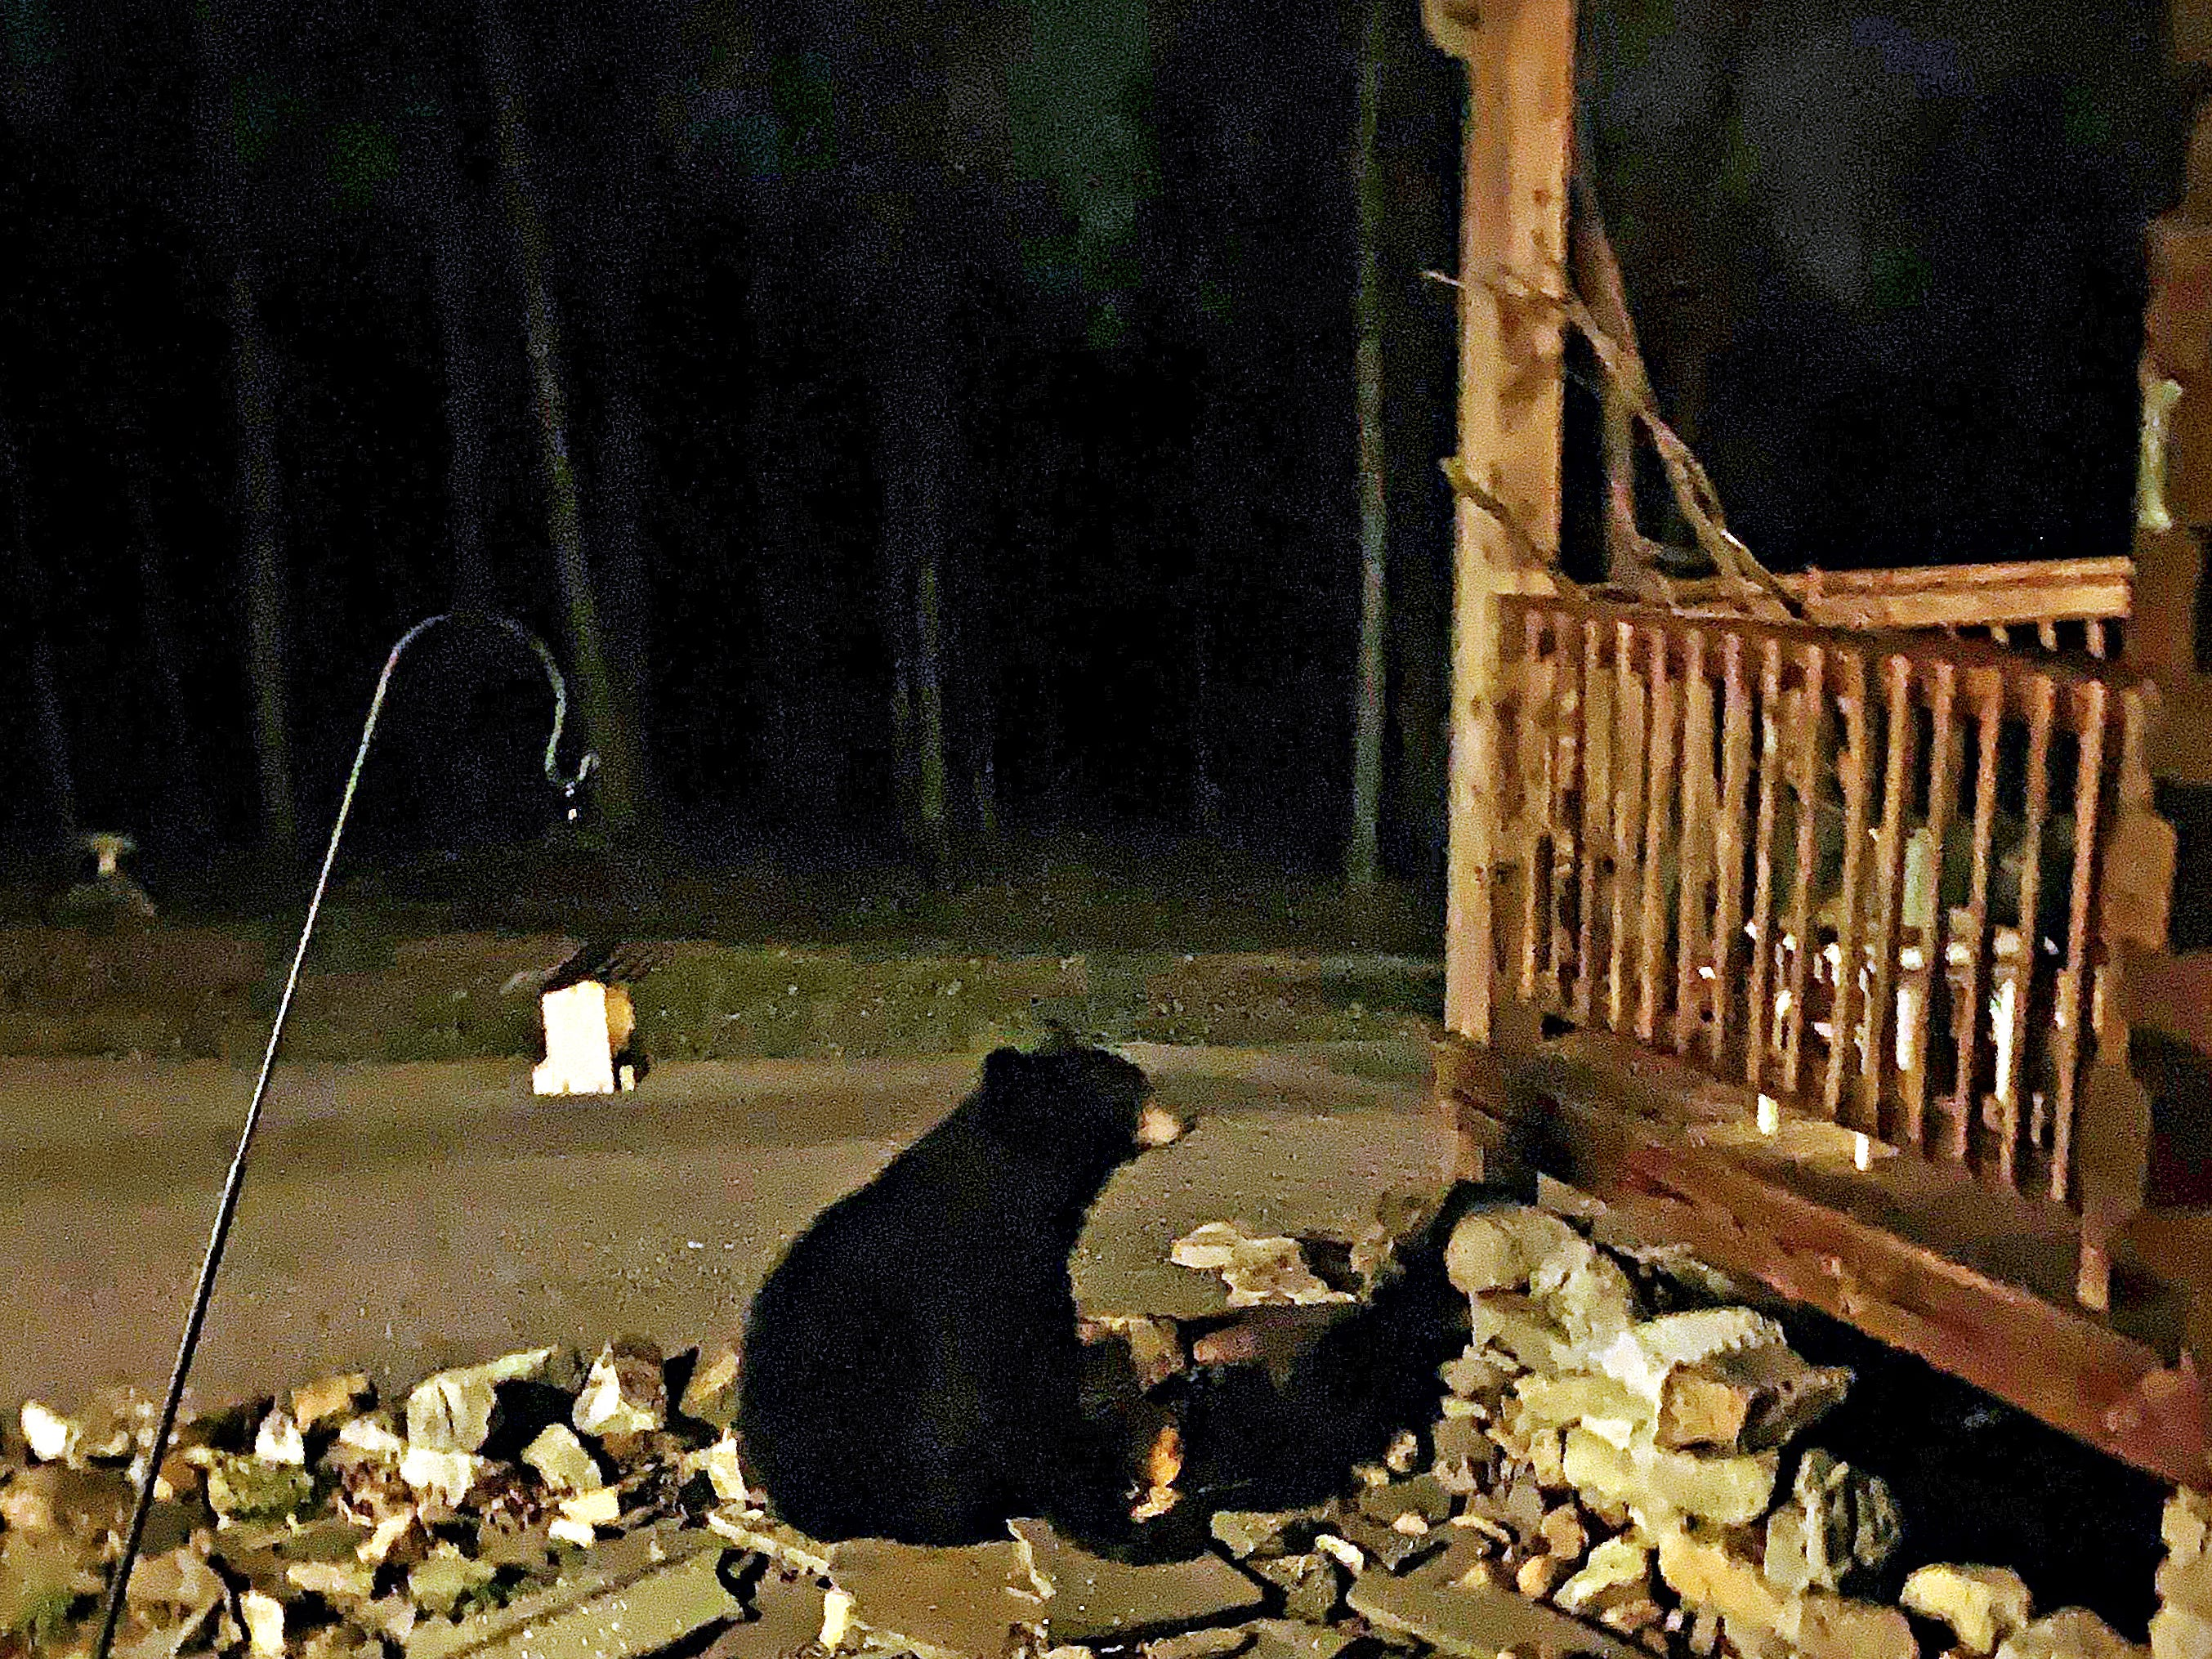 This black bear has been seen on properties in the northwest portion of Hellam Twp. in recent days, according to police, who advise people to merely leave the bear alone. Here, the bear is seen at the home of Karen Holland and her children, Josie and Chaz. She said her children were excited, but a little scared.